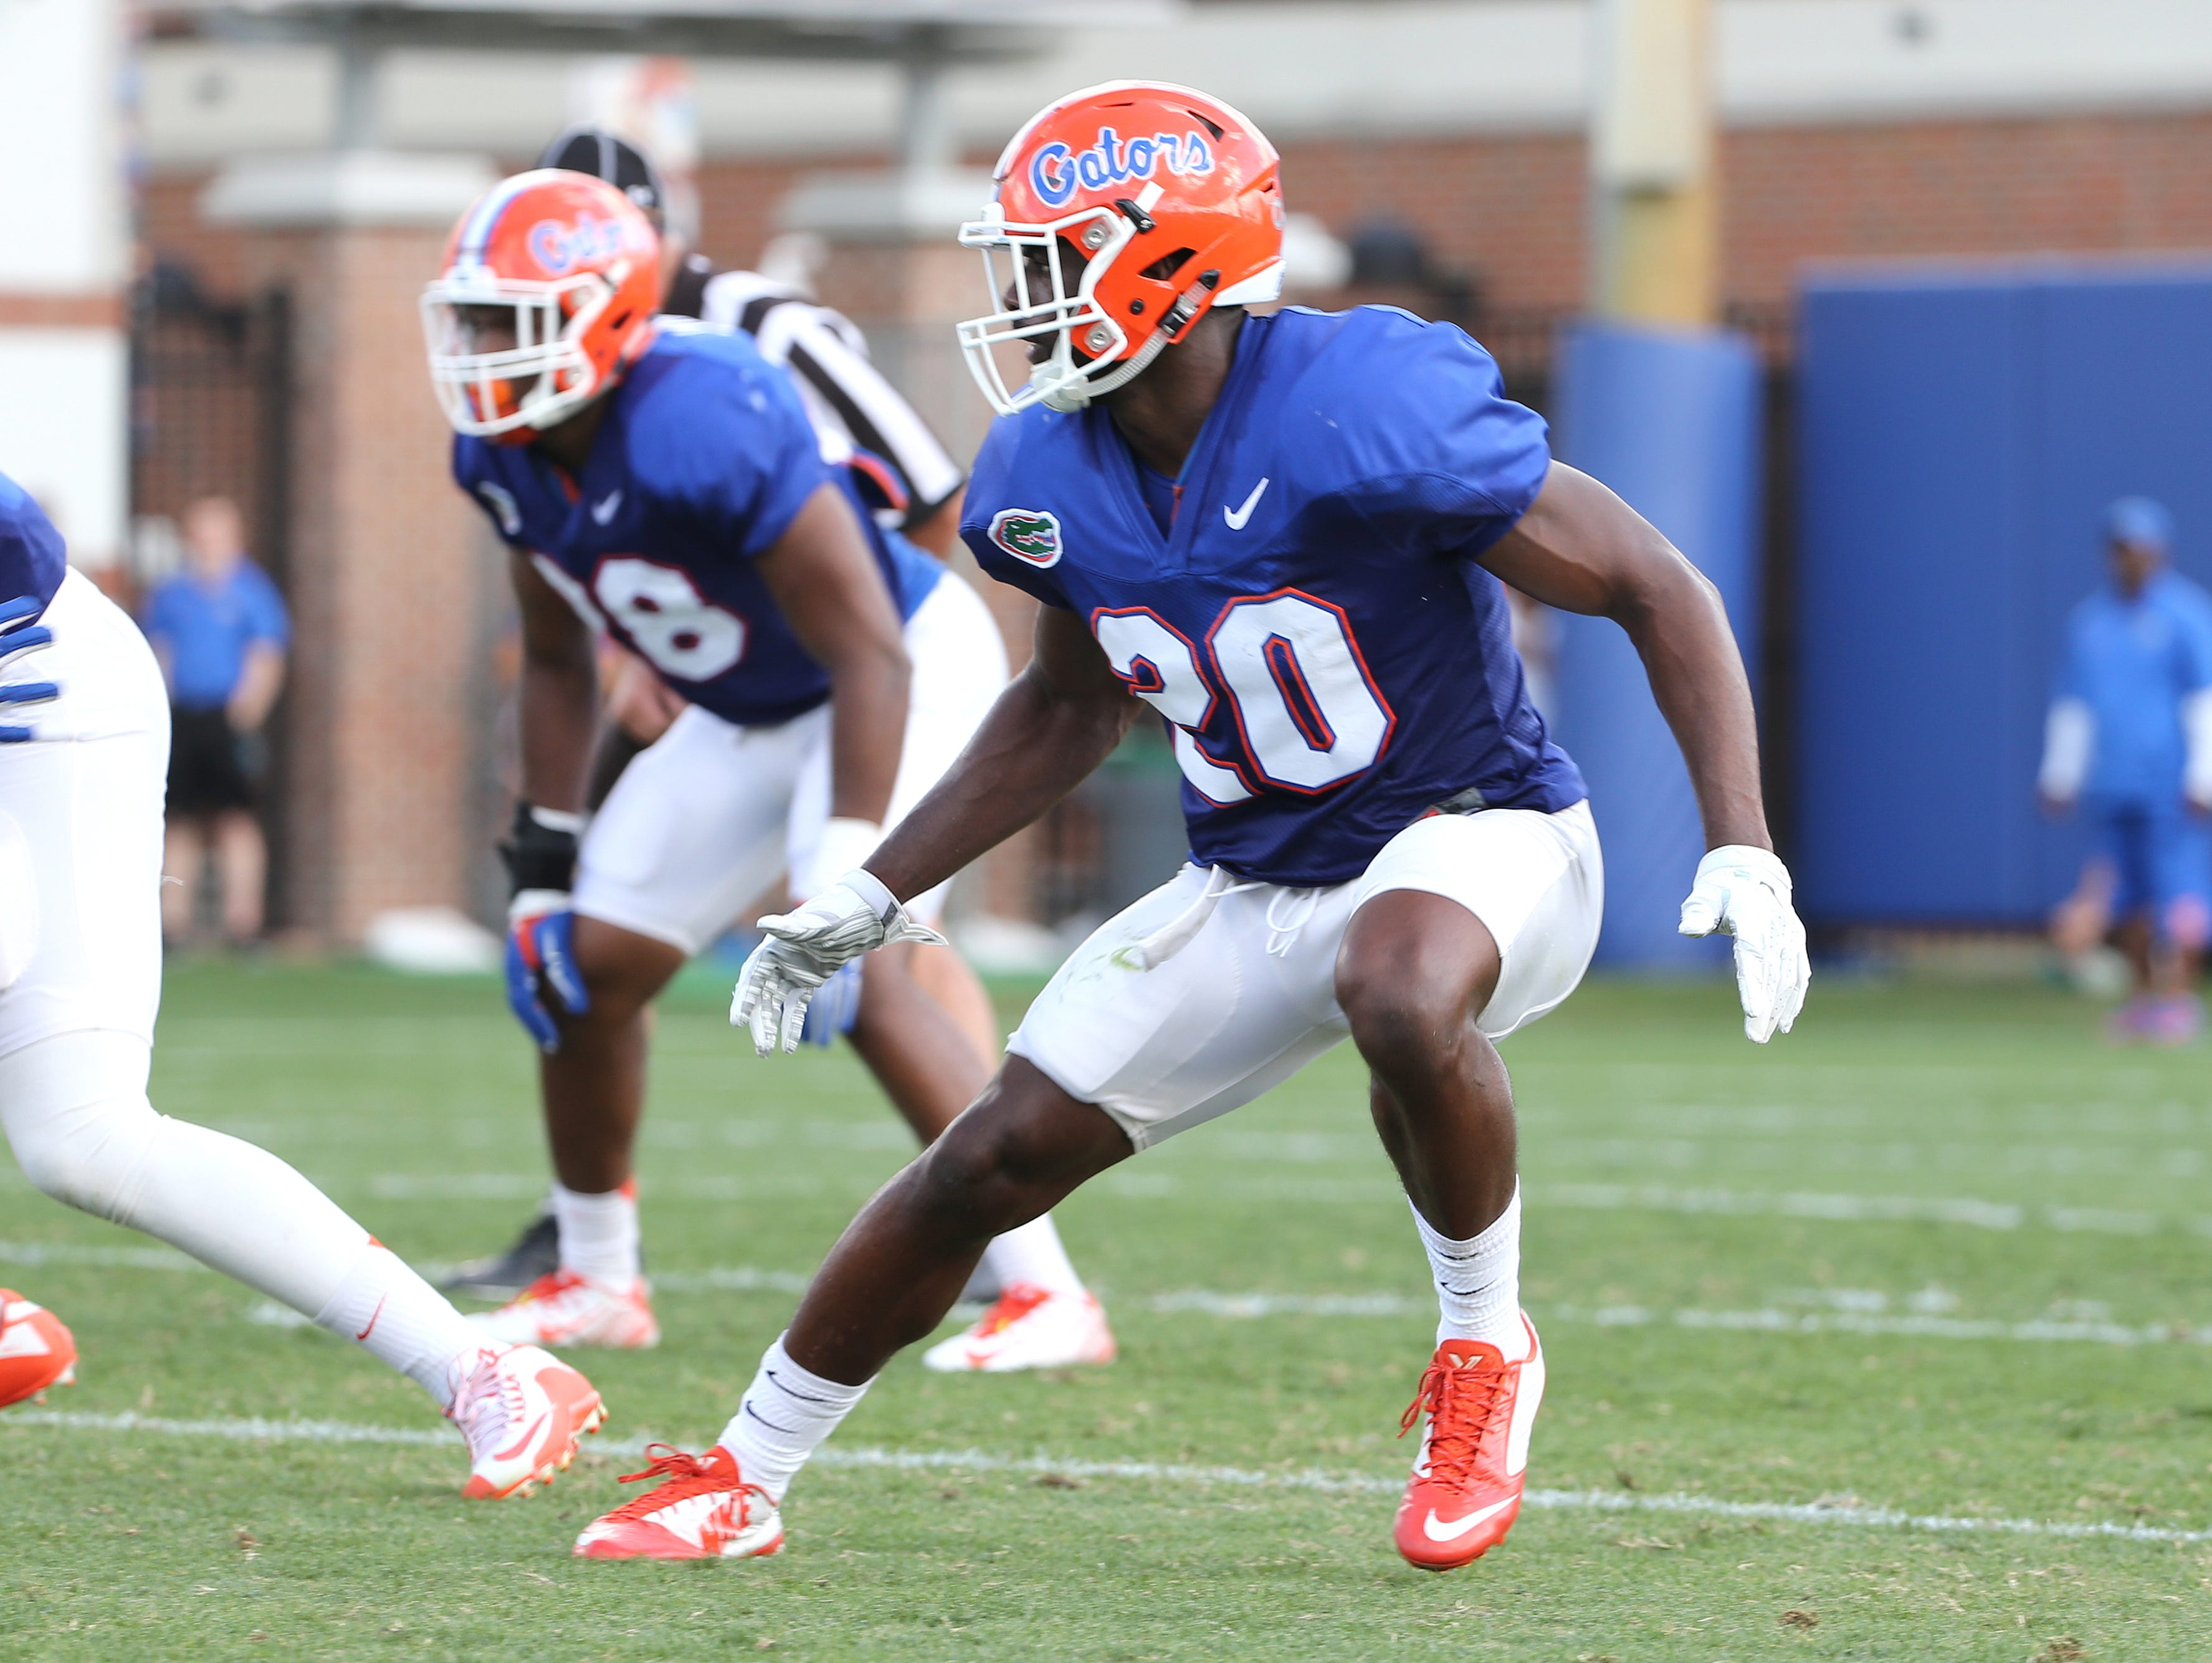 Marcus Maye will lead the University of Florida's defense into the spring game on Friday night.